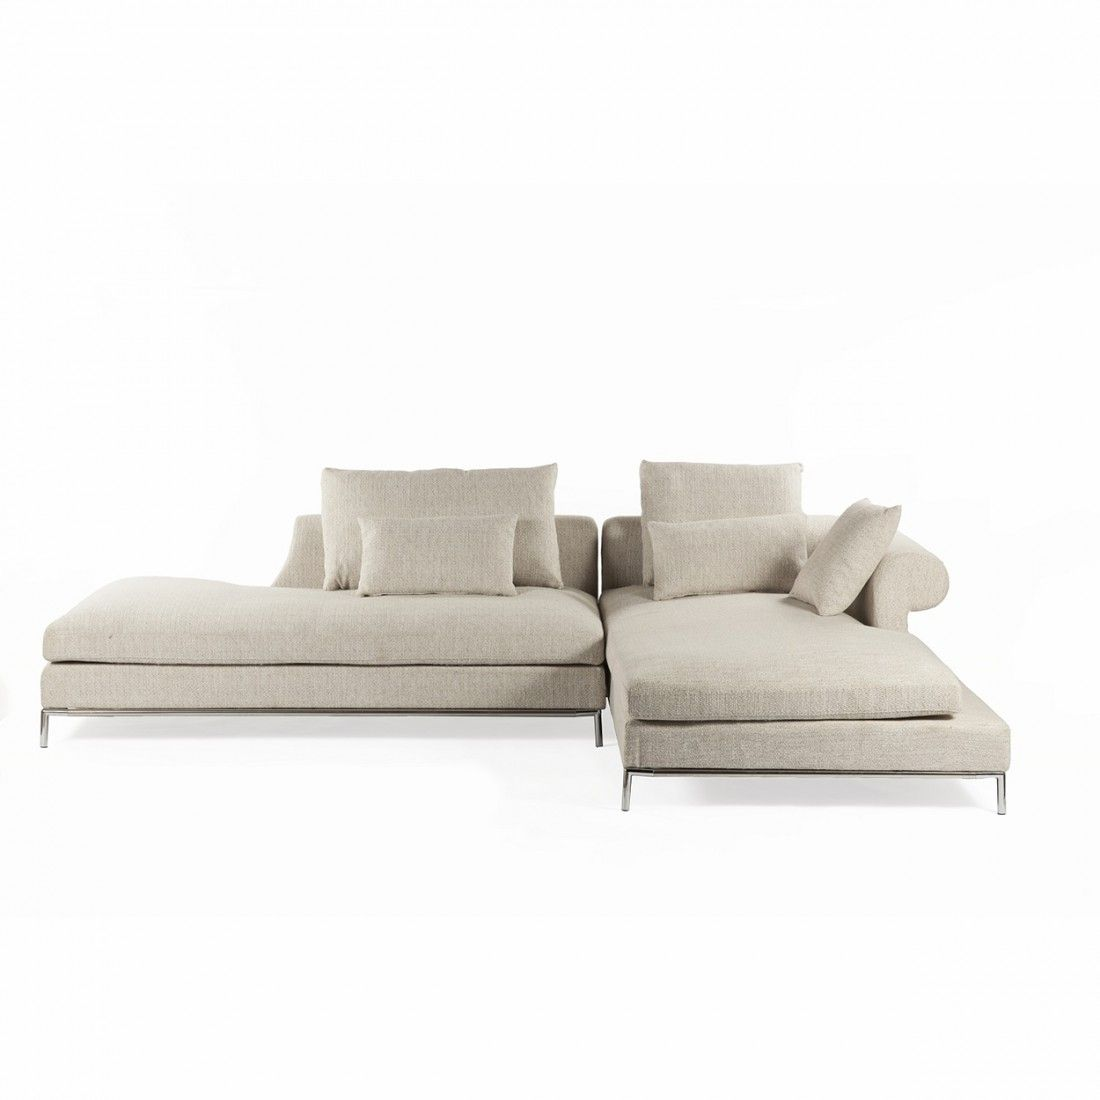 Evon Sectional Sofa He Low Profile Platform Design Of This Sofa Looks Great With Both Sectional Sofa Beige Modern Sofa Sectional Contemporary Sectional Sofa